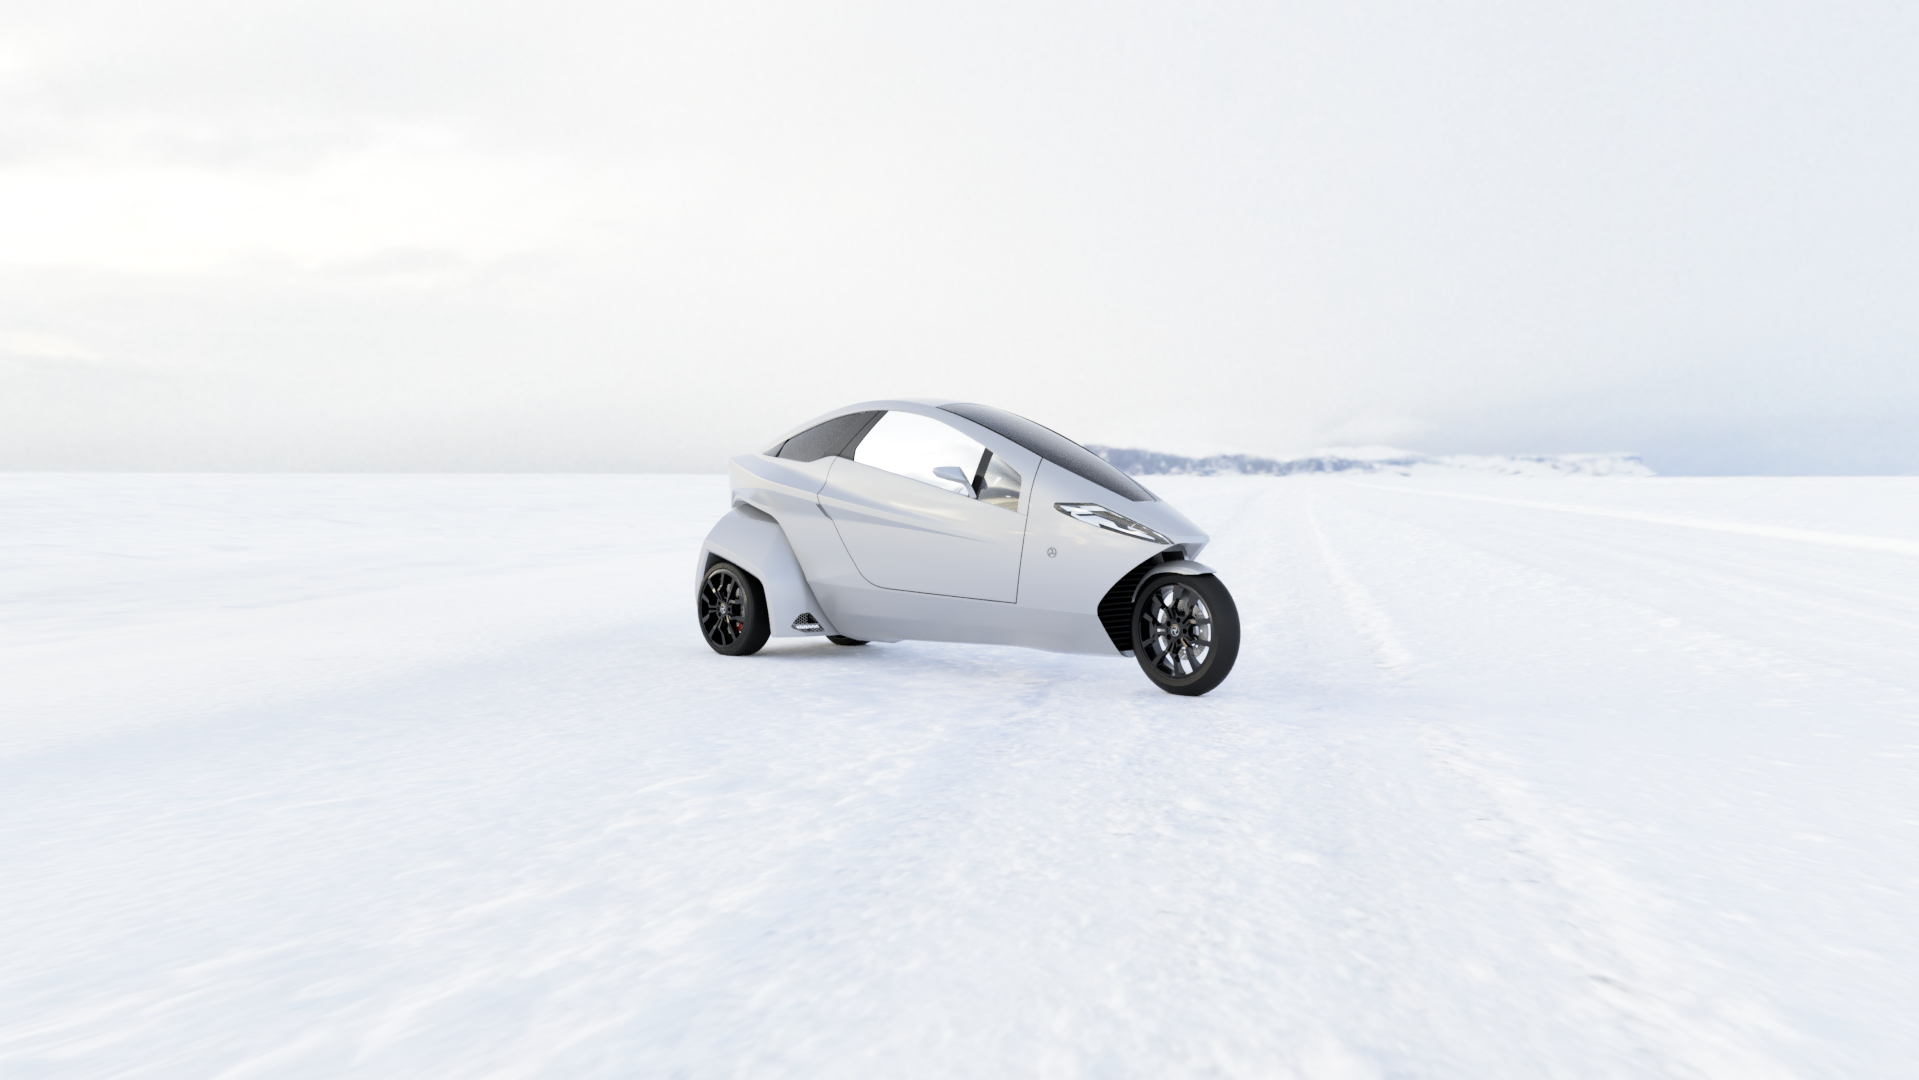 Helix is an electric tilting trike